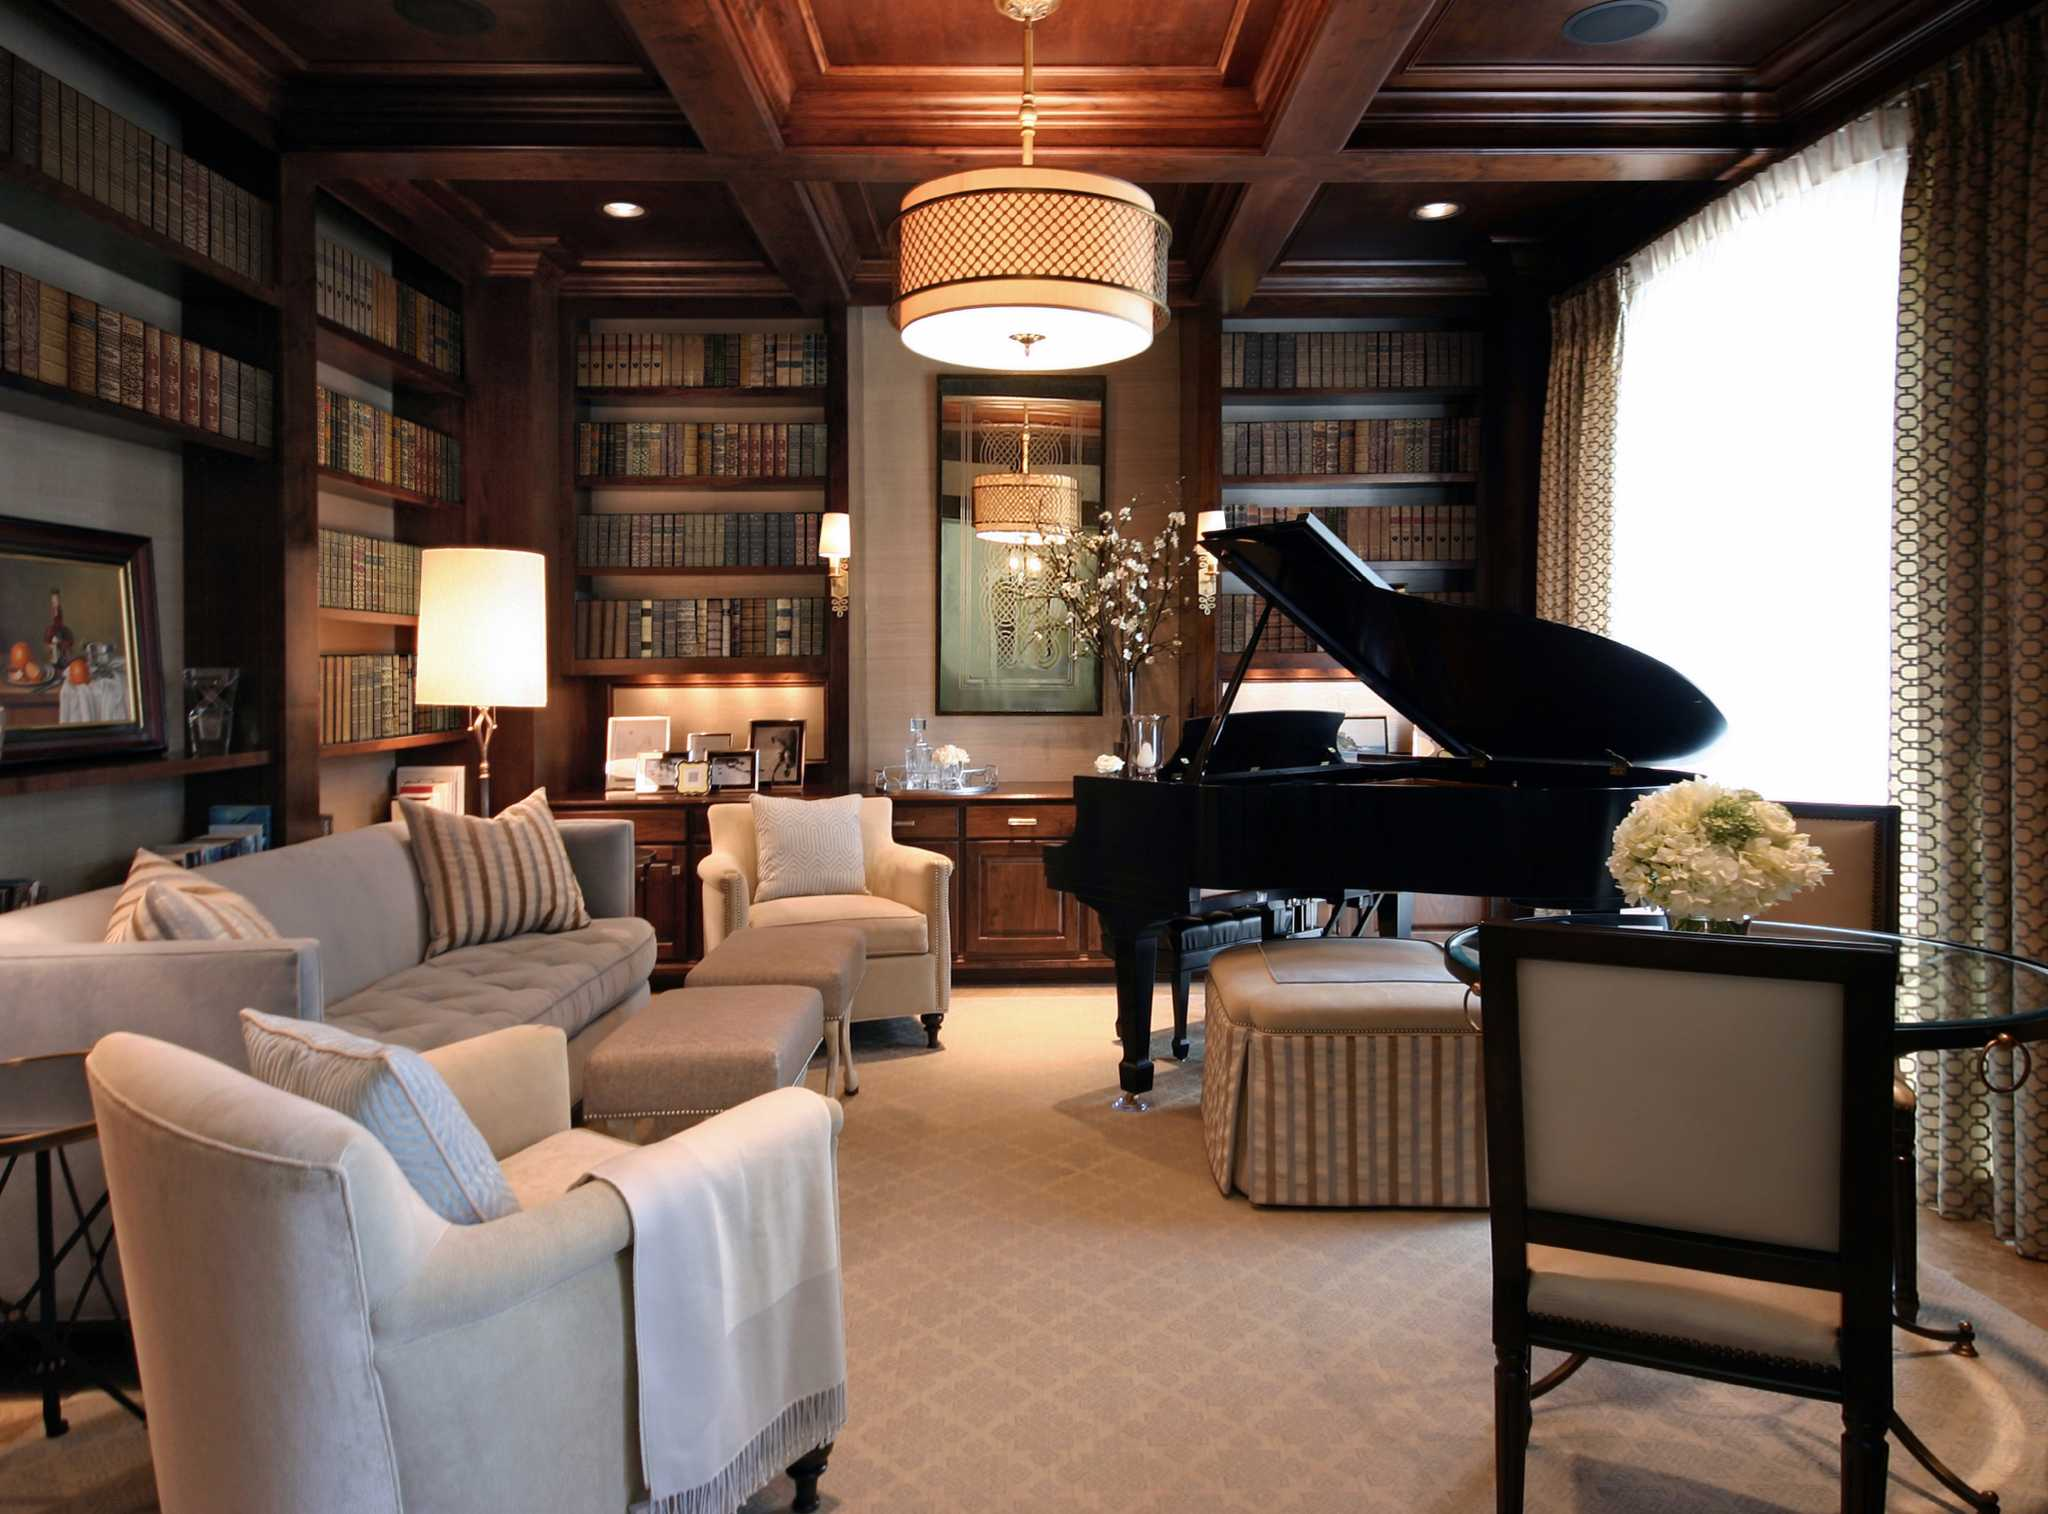 Interior Designers Offer Tips On Approaching Home